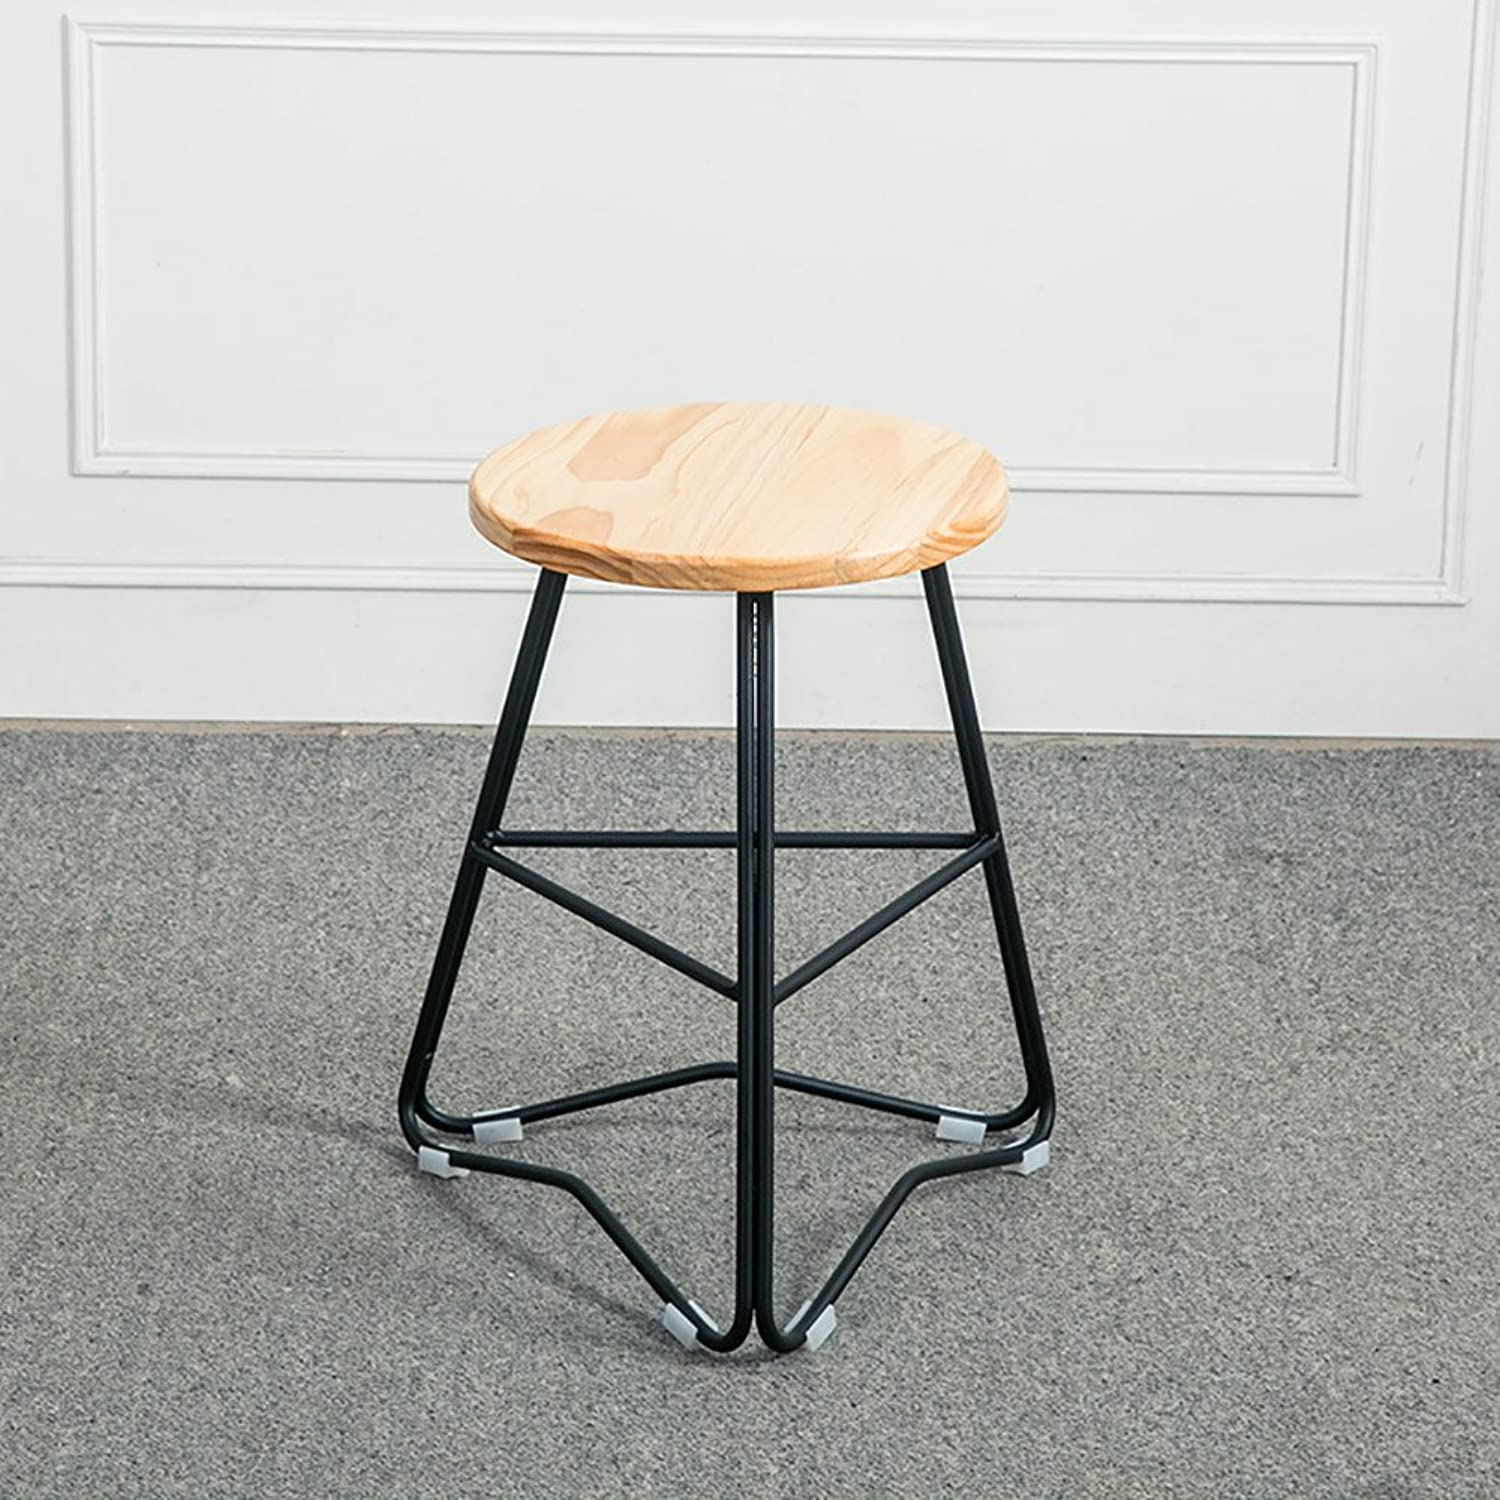 Nationwel@ Rustic Designer Kitchen Pub Metal Bar Stool Industrial Wooden Top-Solid Nordic Wood (color   2, Size   45CM)